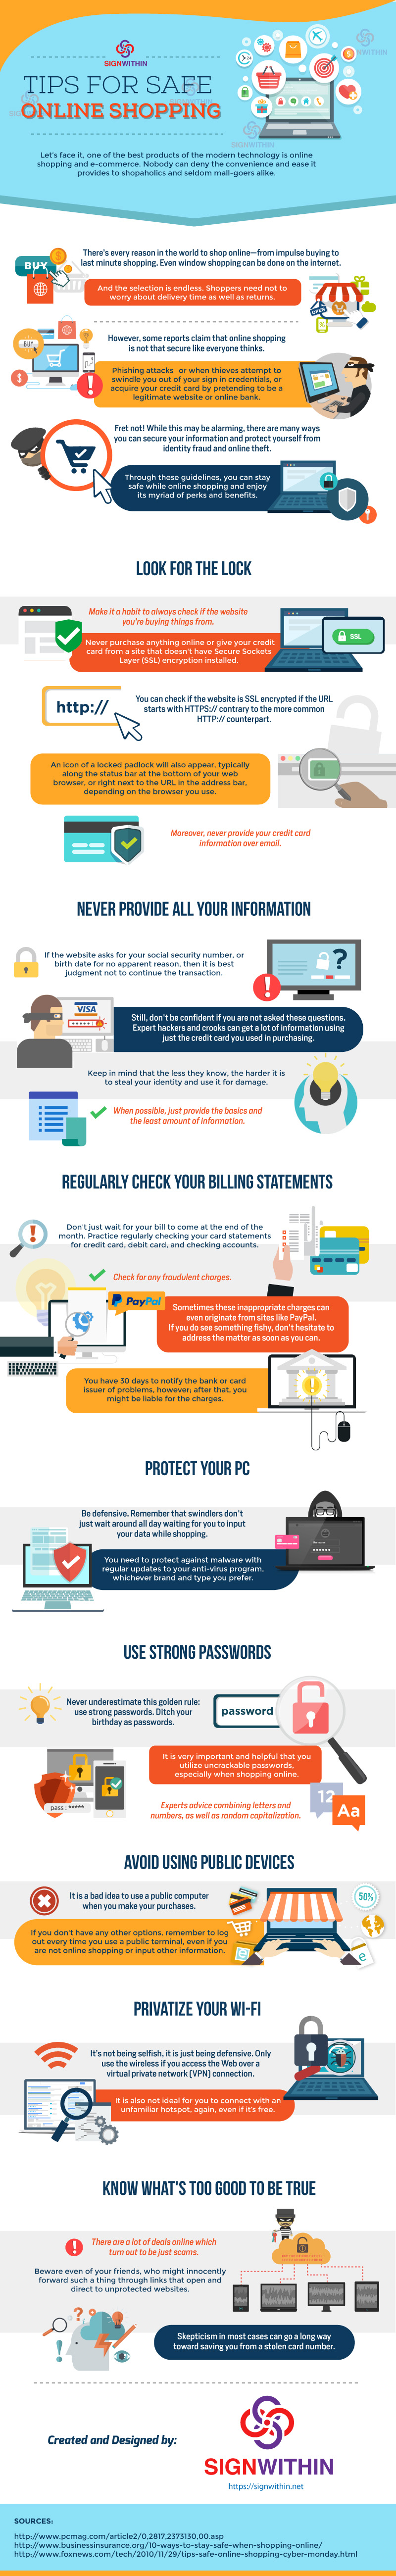 Tips for Safe Online Shopping [Infographic]